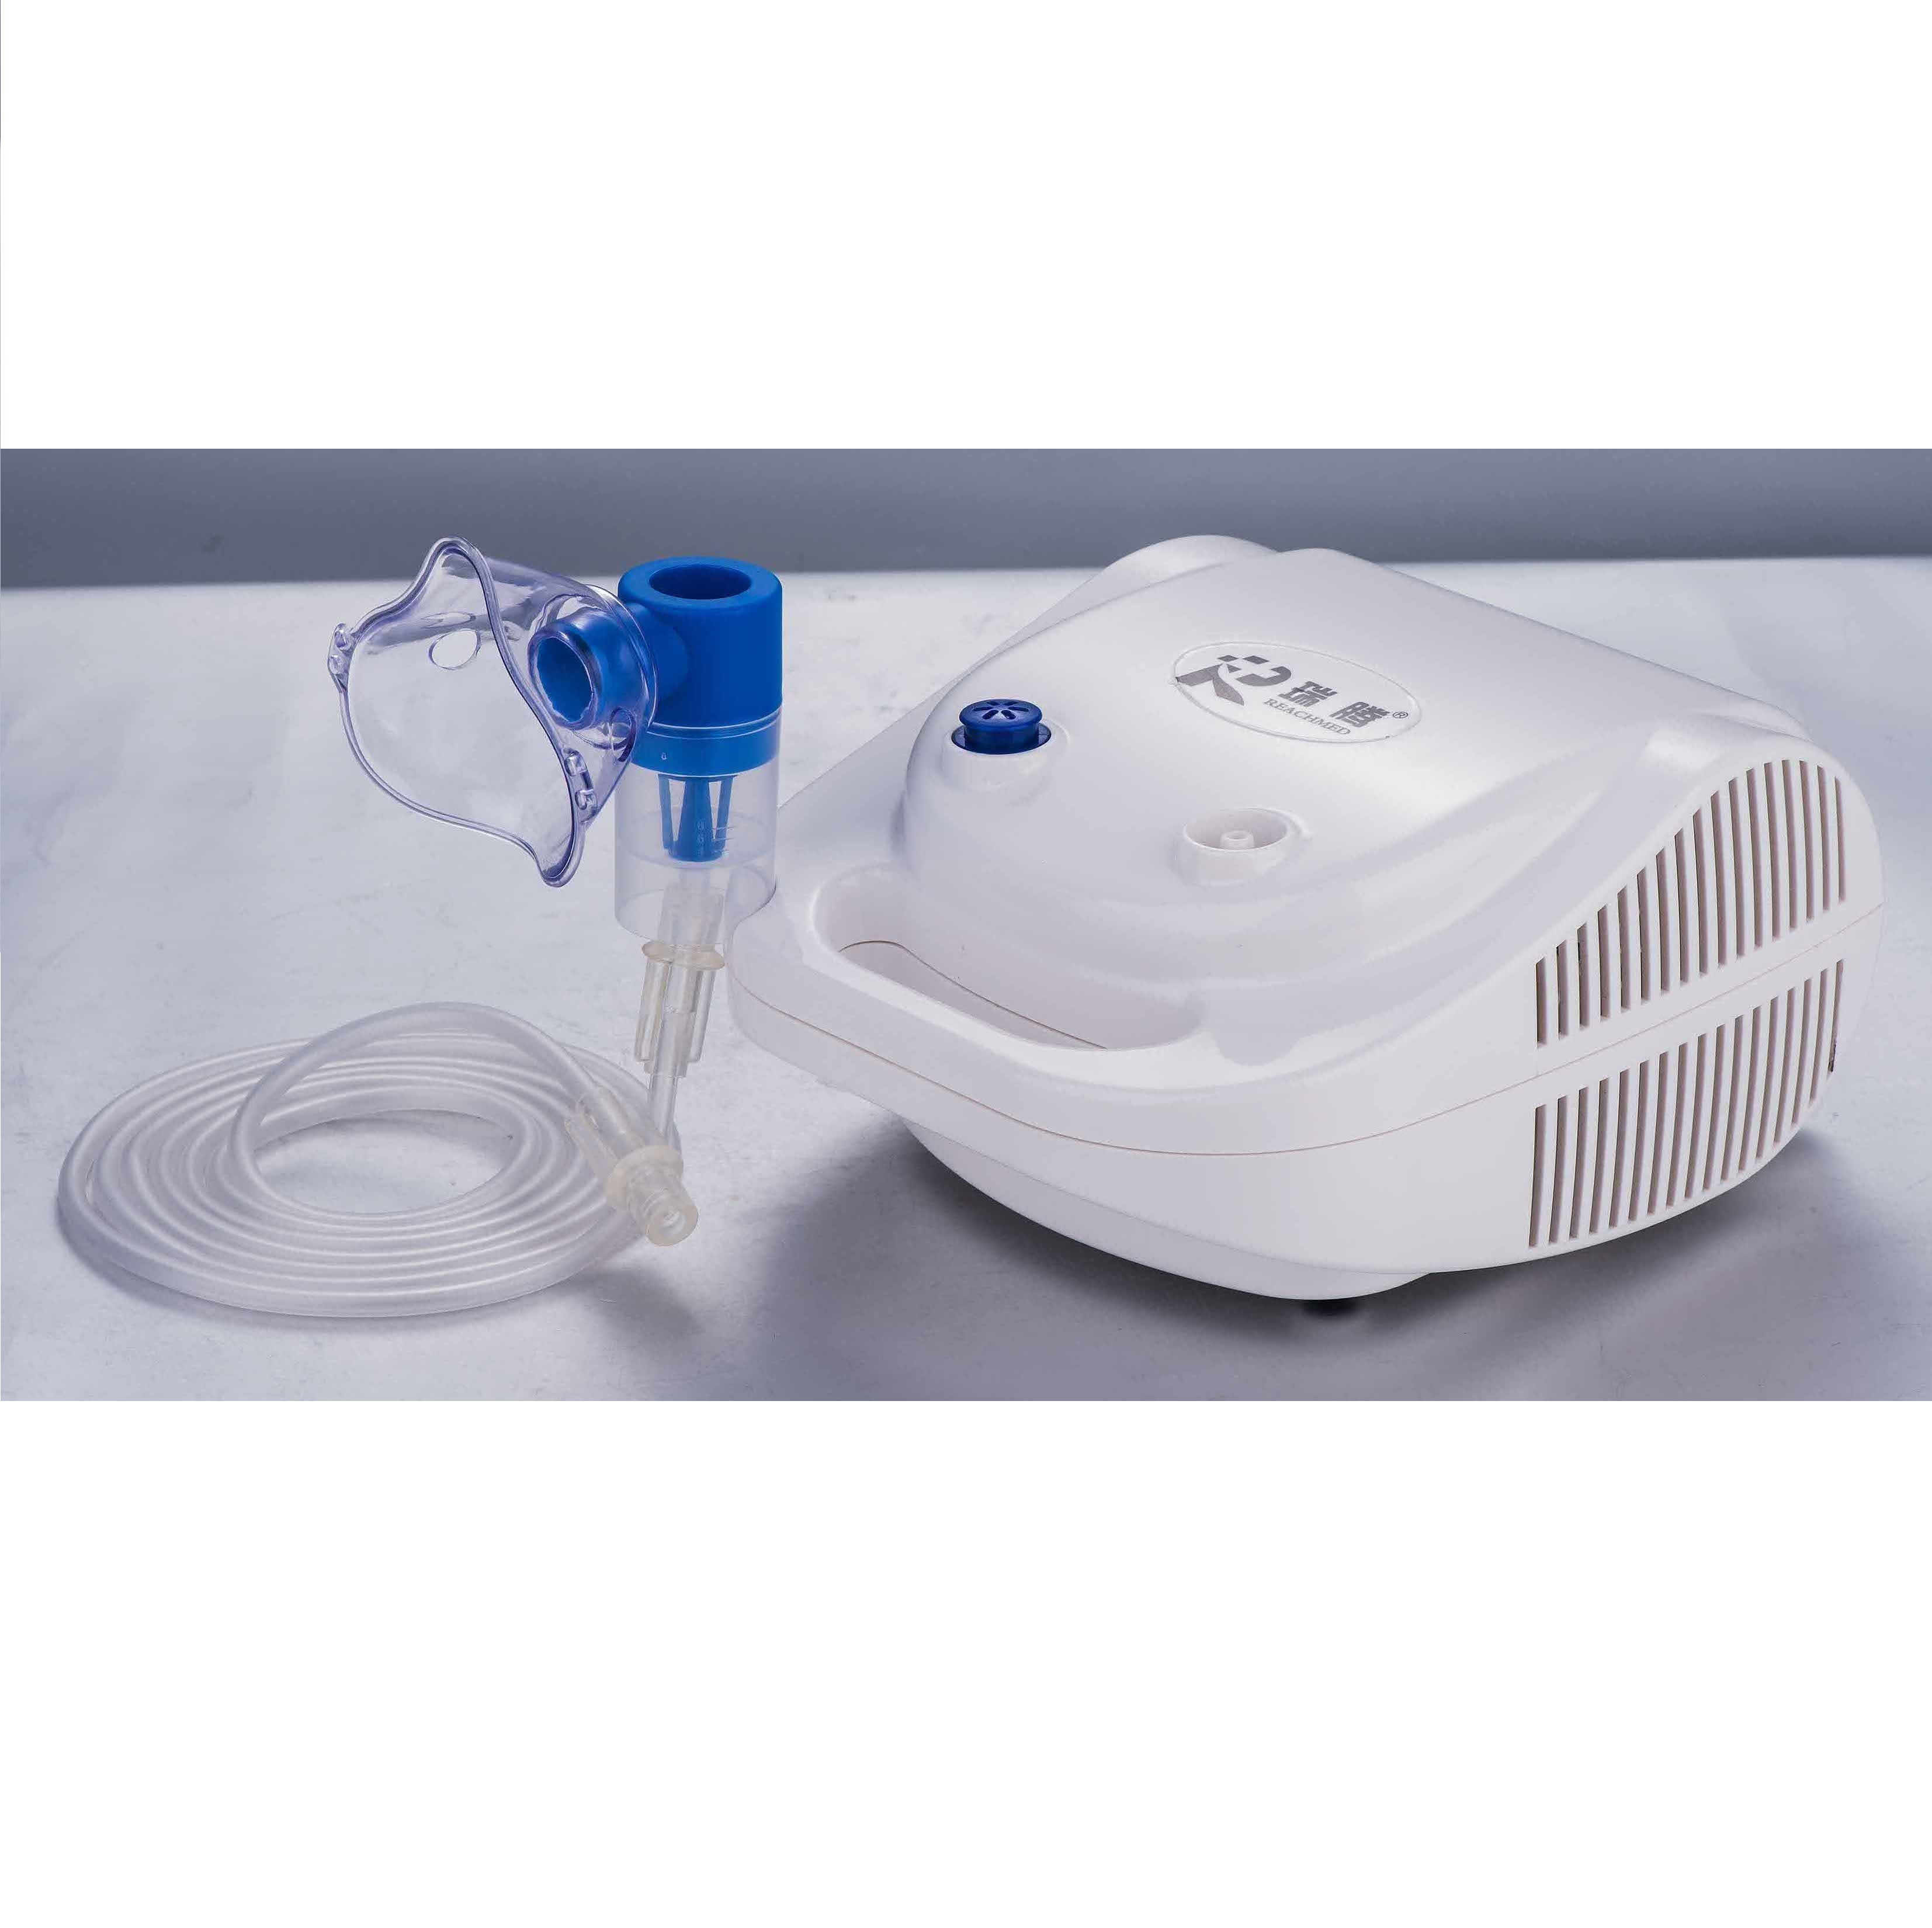 China Supply CE Oxygen Mask Nebulizer for Home Use Medical Nebulizer Accessories